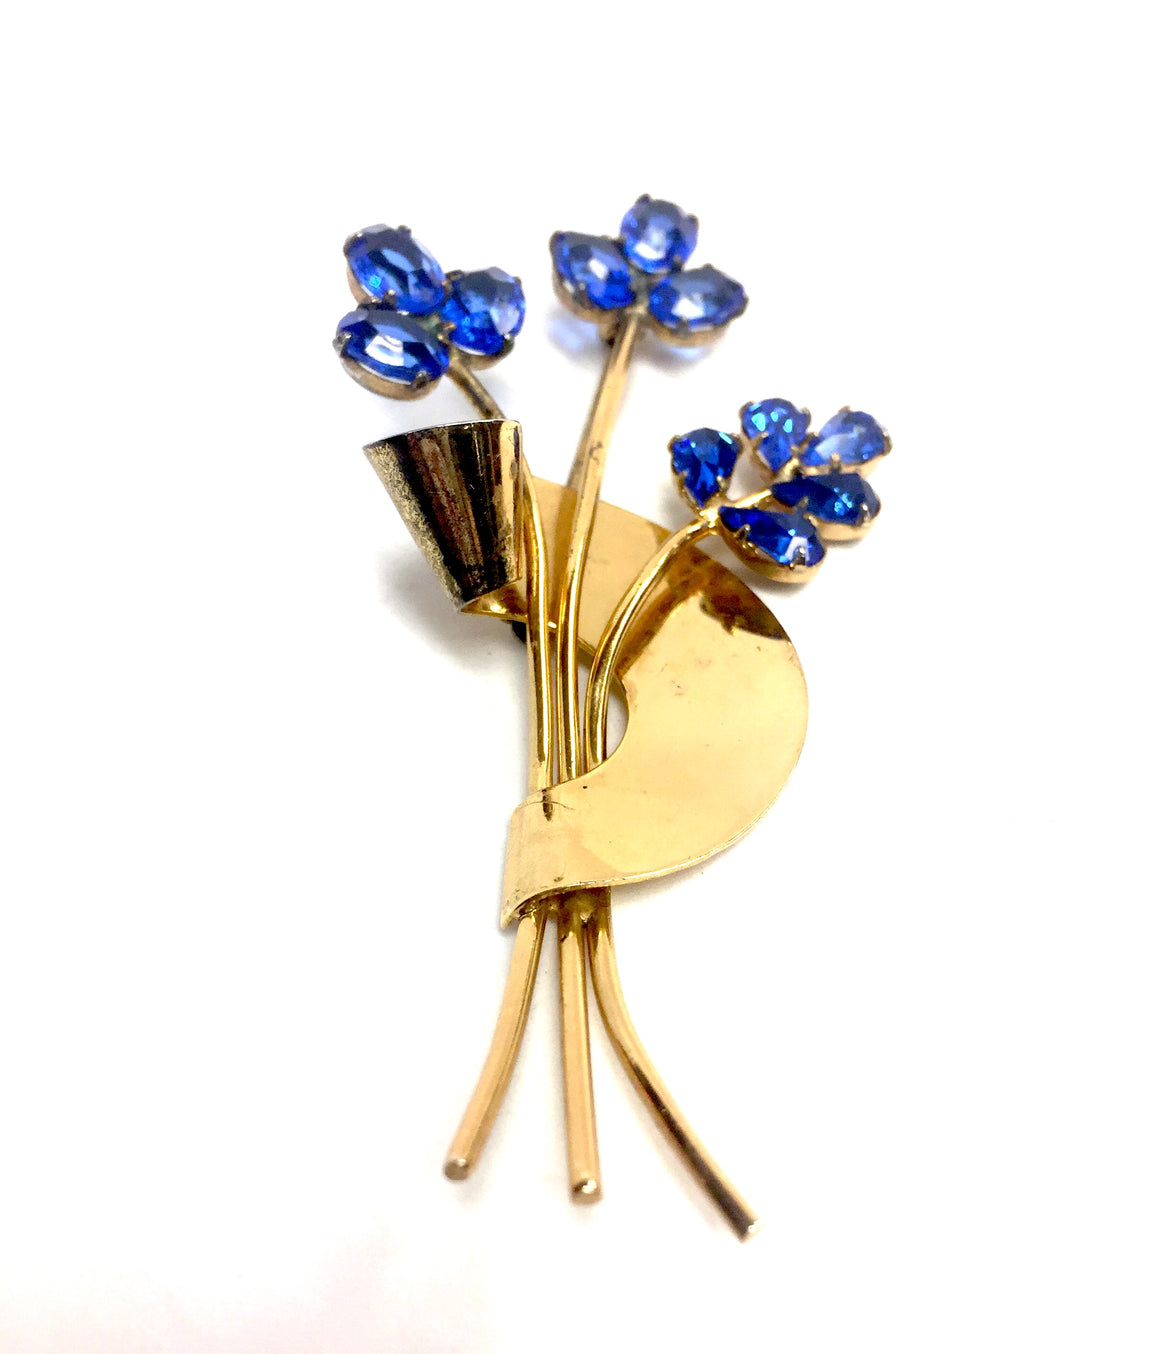 Vintage CORO Sterling Silver Vermeil Blue Crystal Floral Spray Pin Brooch